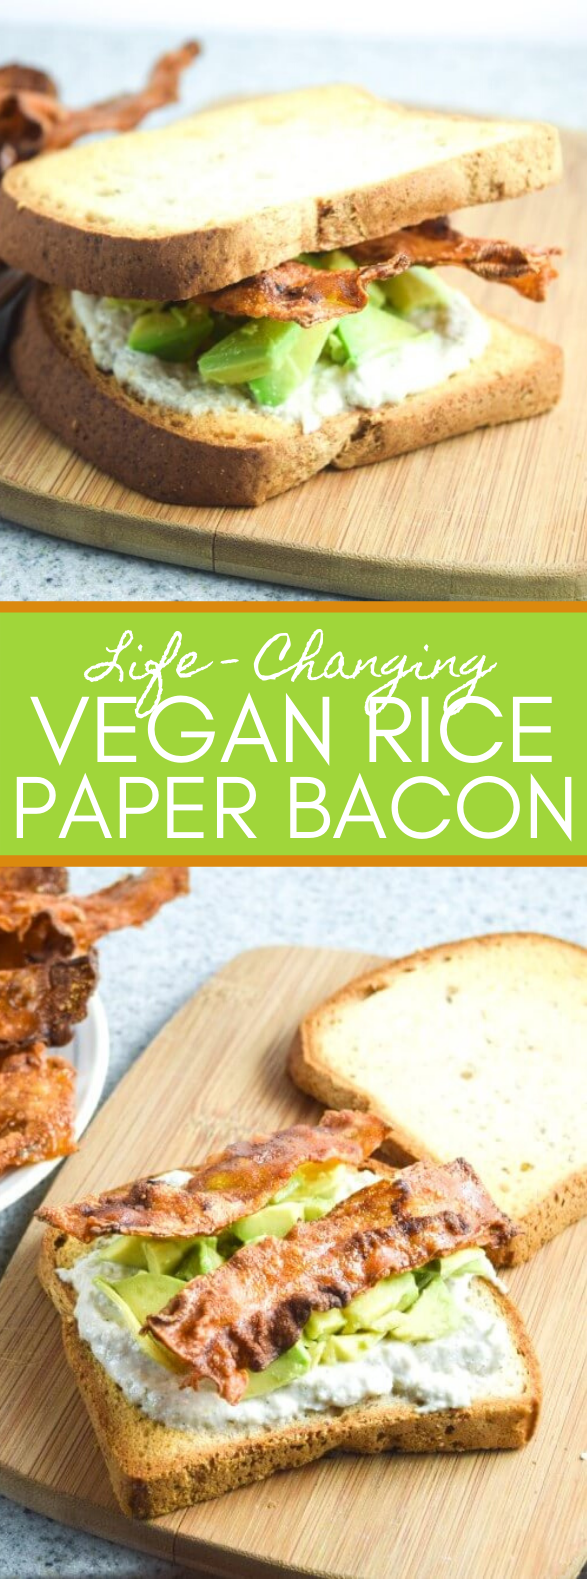 VEGAN RICE PAPER BACON (POSSIBLY LIFE-CHANGING) #vegetarian #lunch